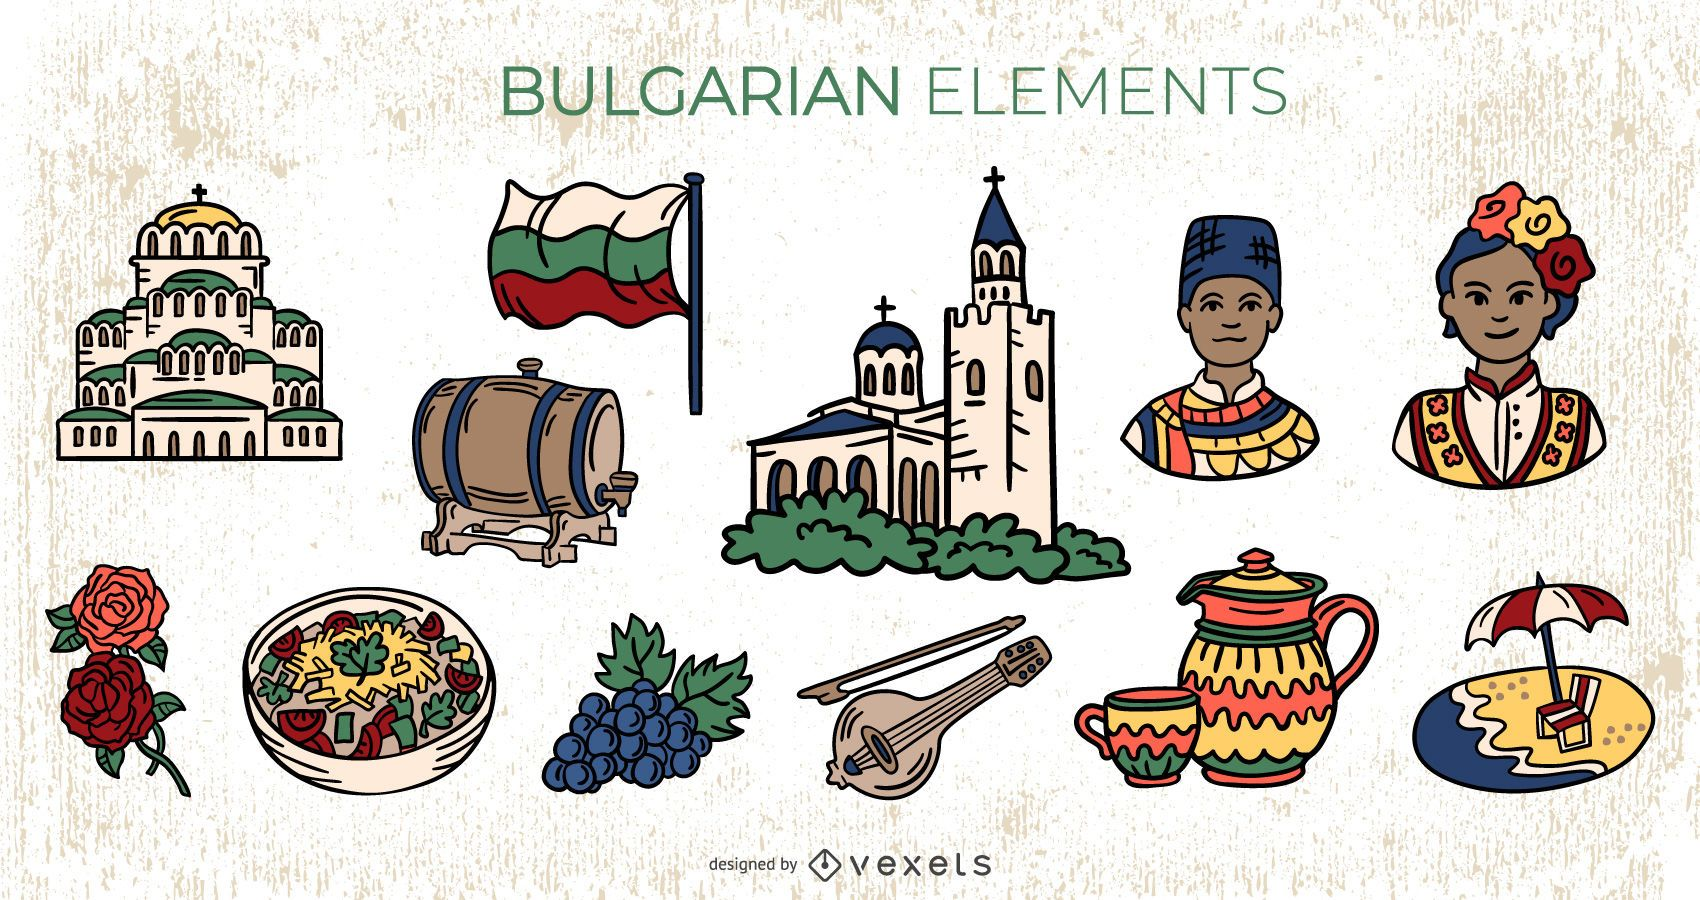 Bulgarian Elements Colorful Illustration Pack